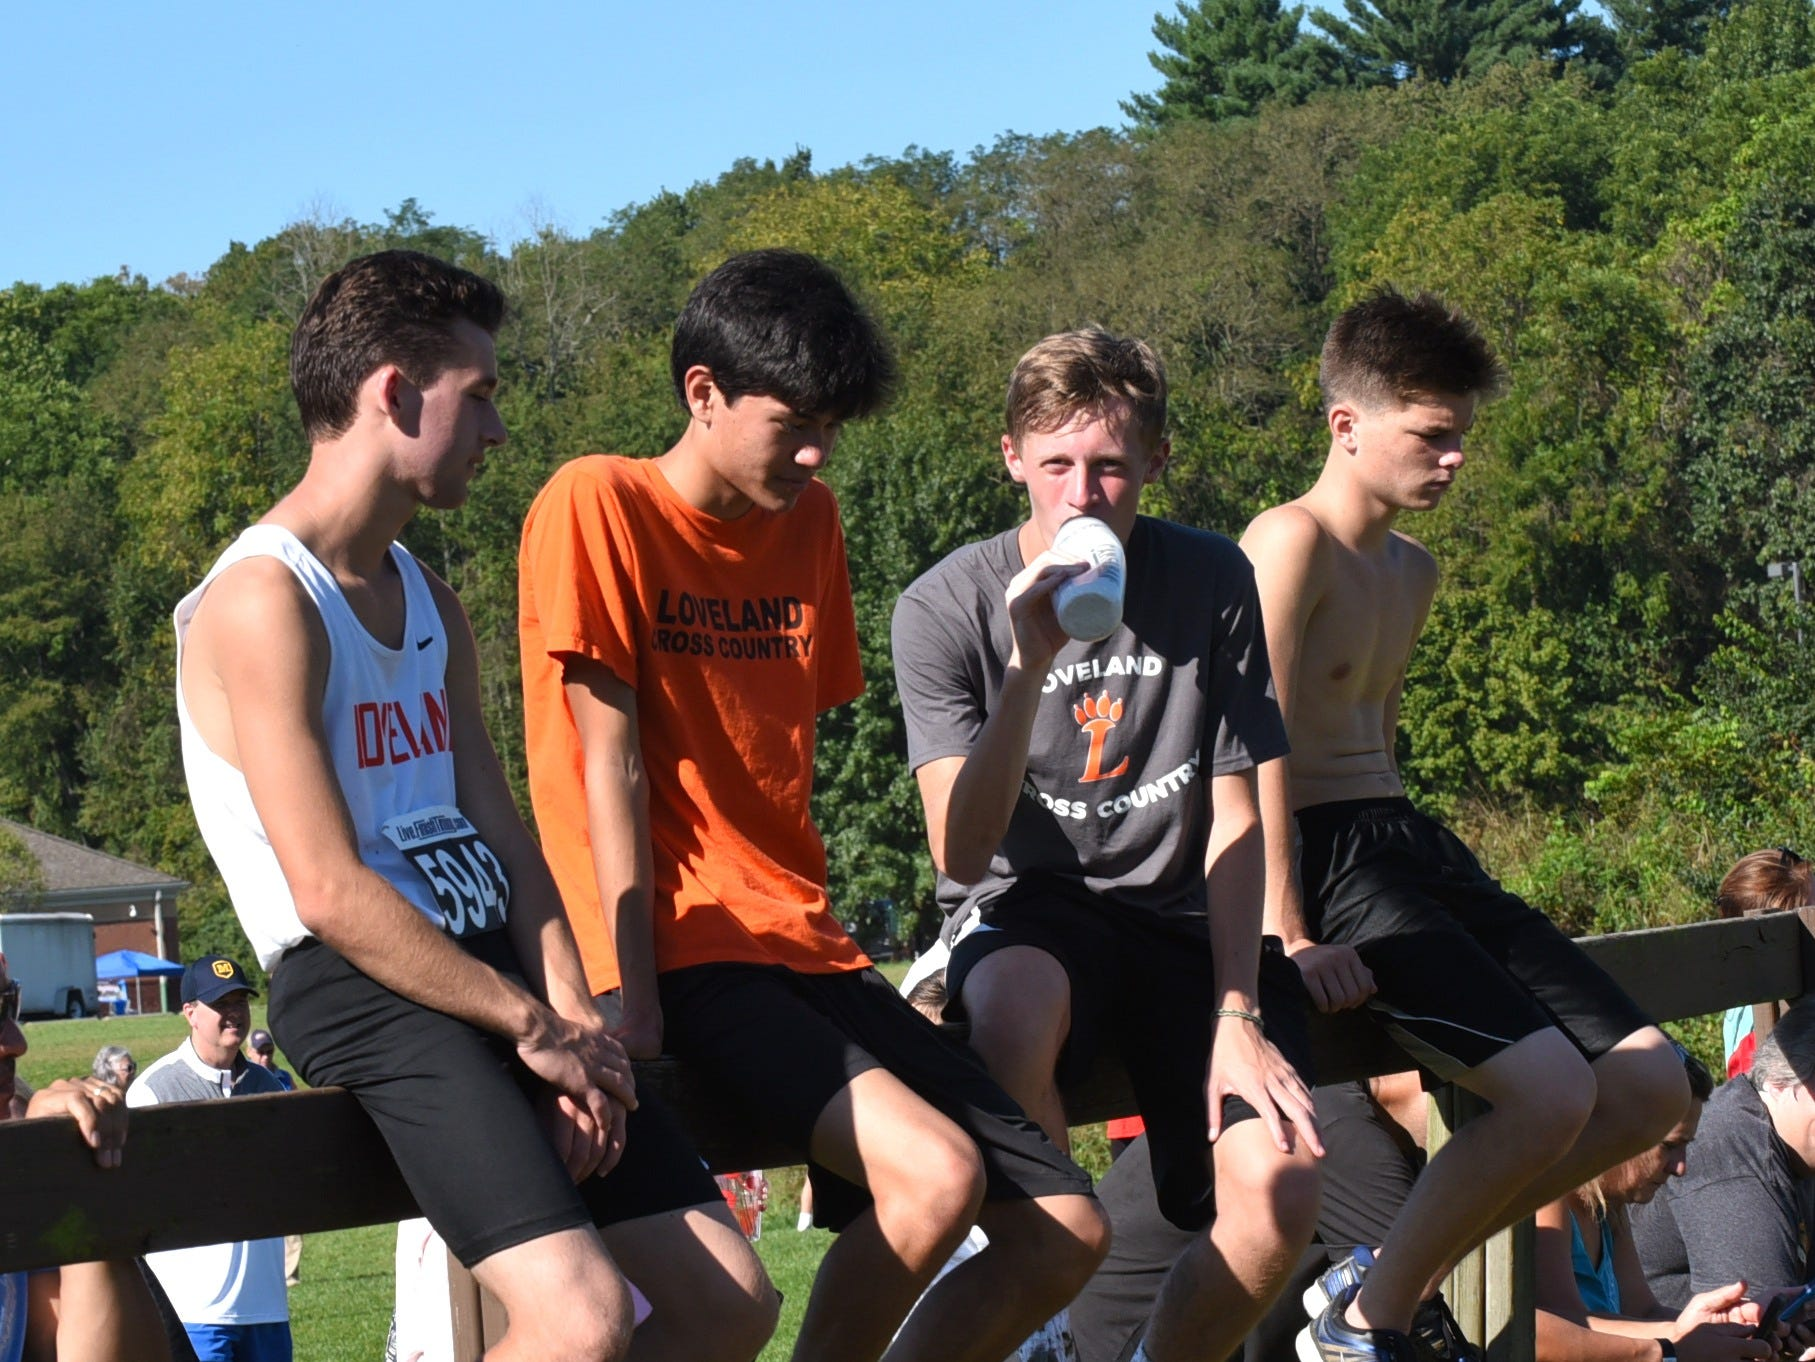 Loveland XC student supporters take to the fence to cheer for the Tigers in the boys varsity 5K race at the 2018 Milford Cross Country Invitational, Sept. 15, 2018.